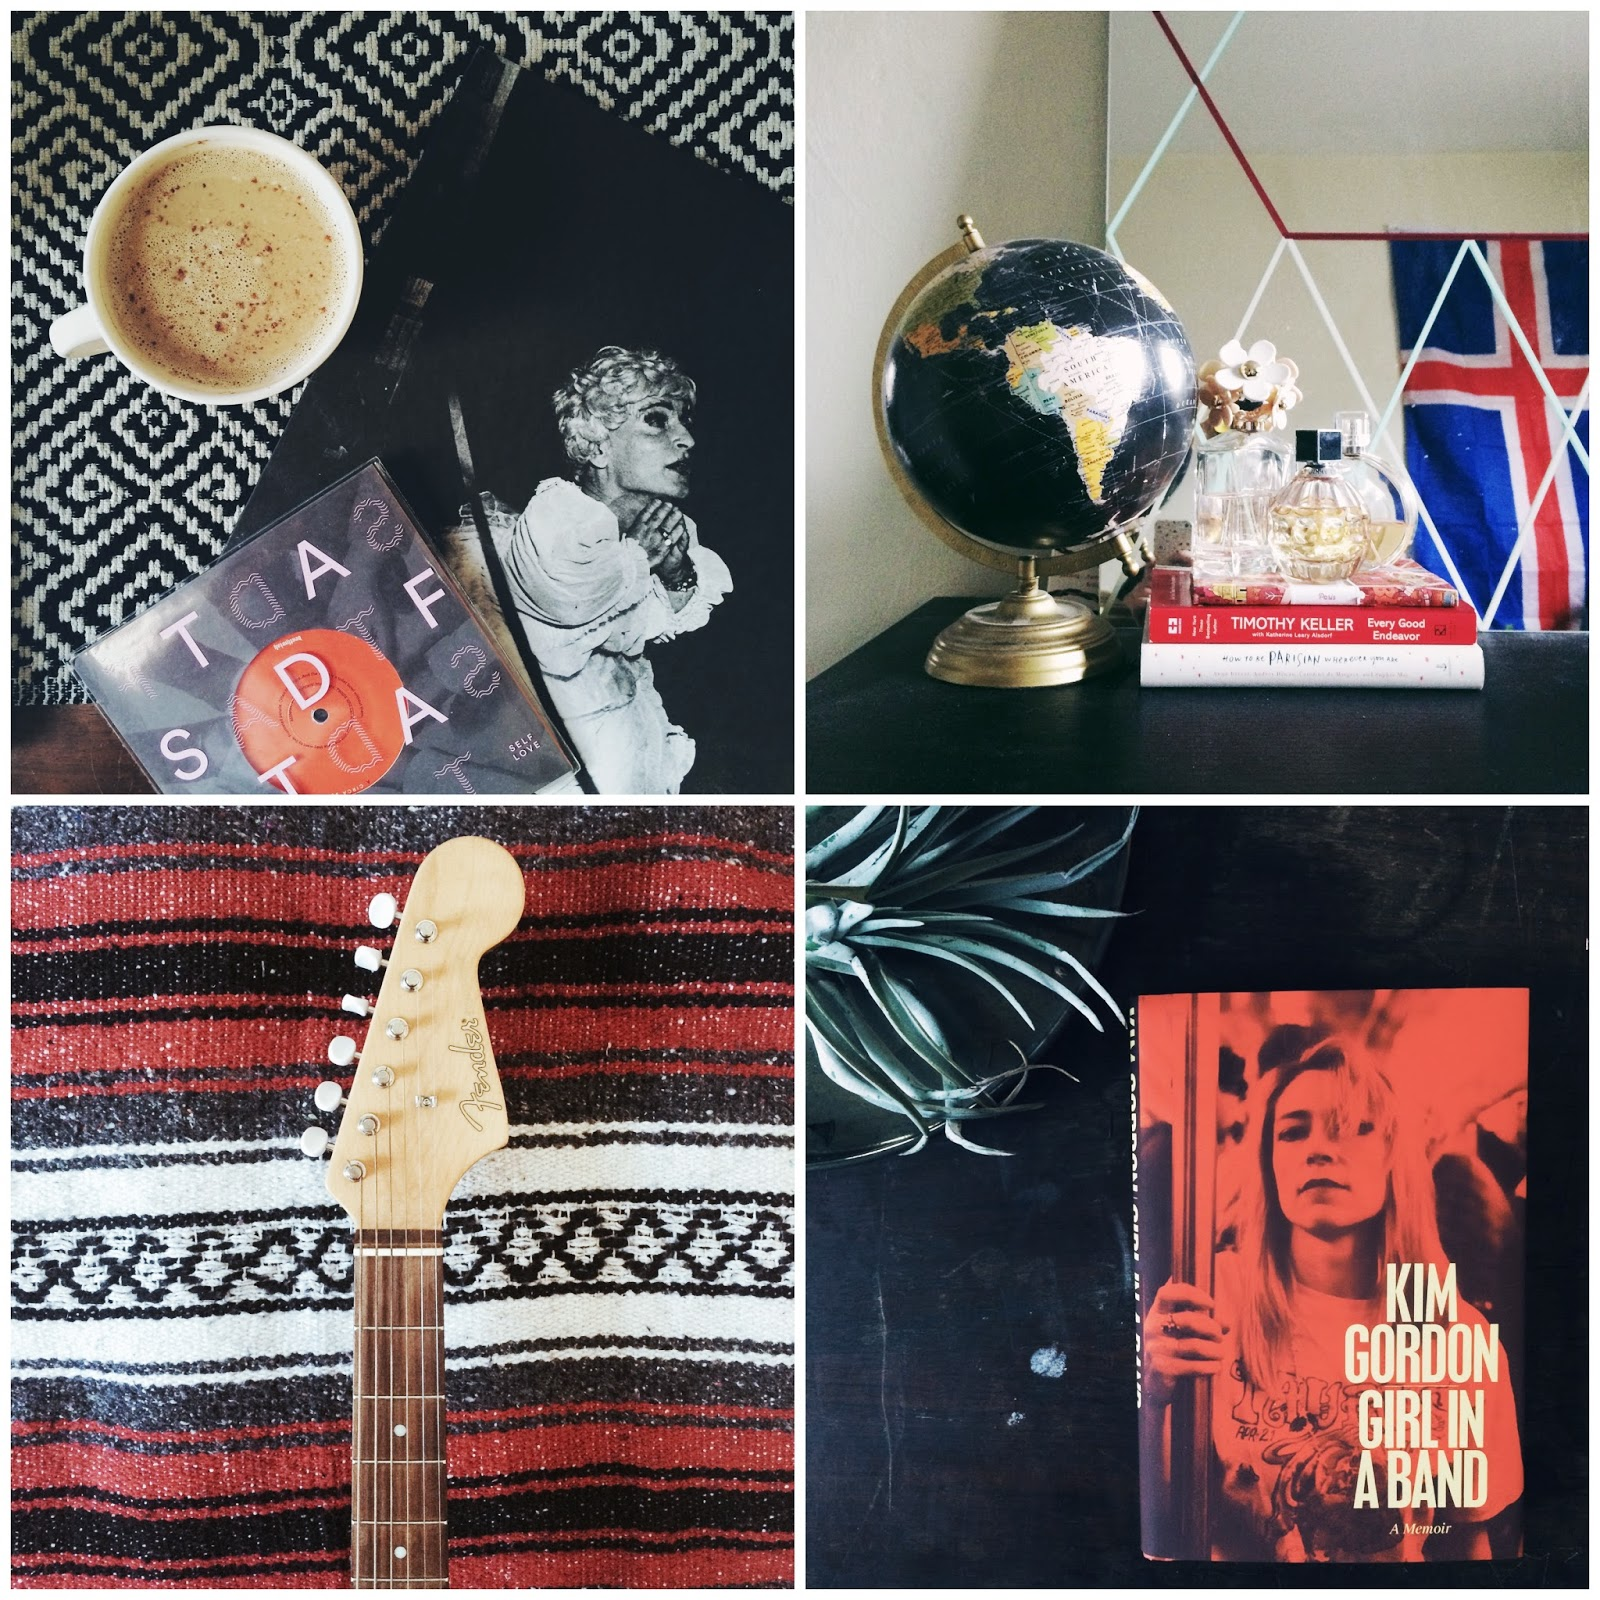 Girl in a Band, Kim Gordon, globe, iceland, flag, decor, Fender, acoustic, mexican, blanket, self defense family, touché amore,